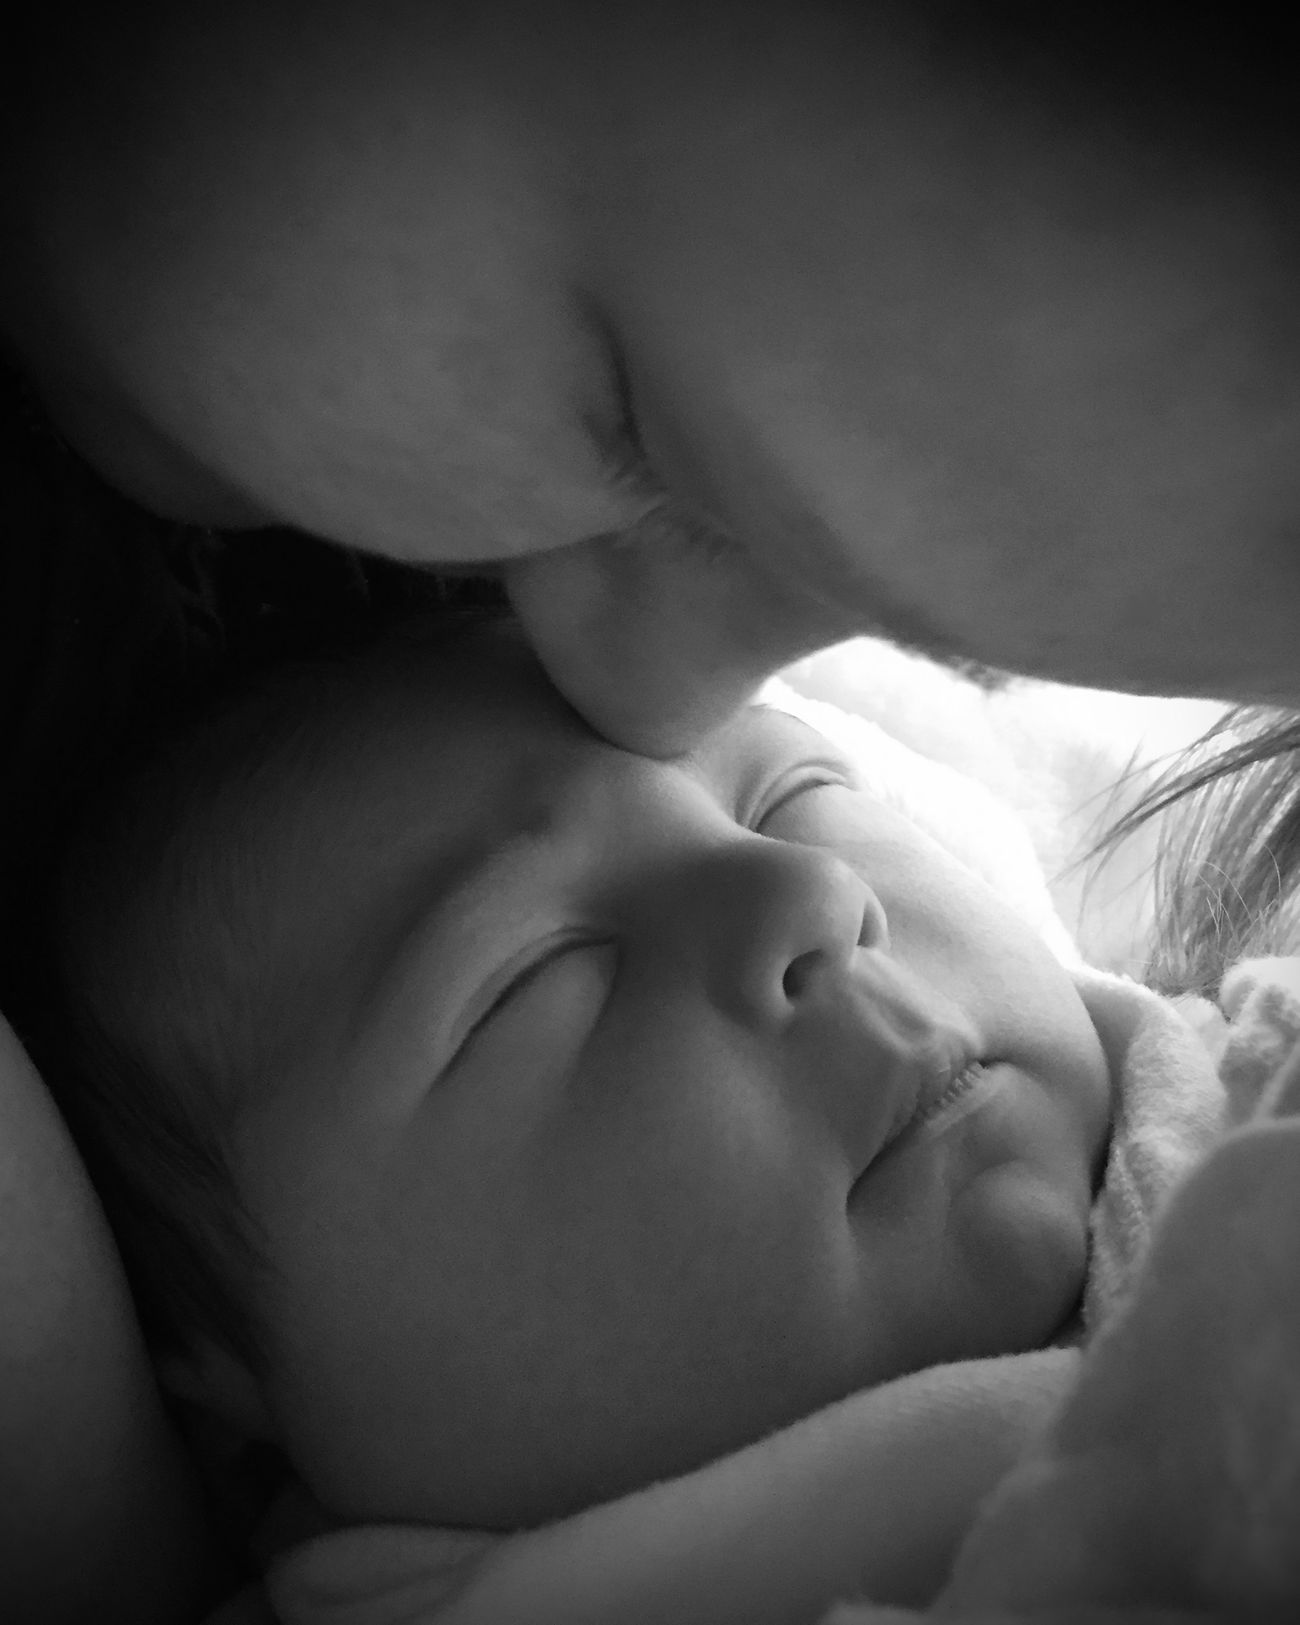 Mother & Child Baby Black And White Blackandwhite Blackandwhite Photography Child Iphone6 IPhoneography Mom Mother